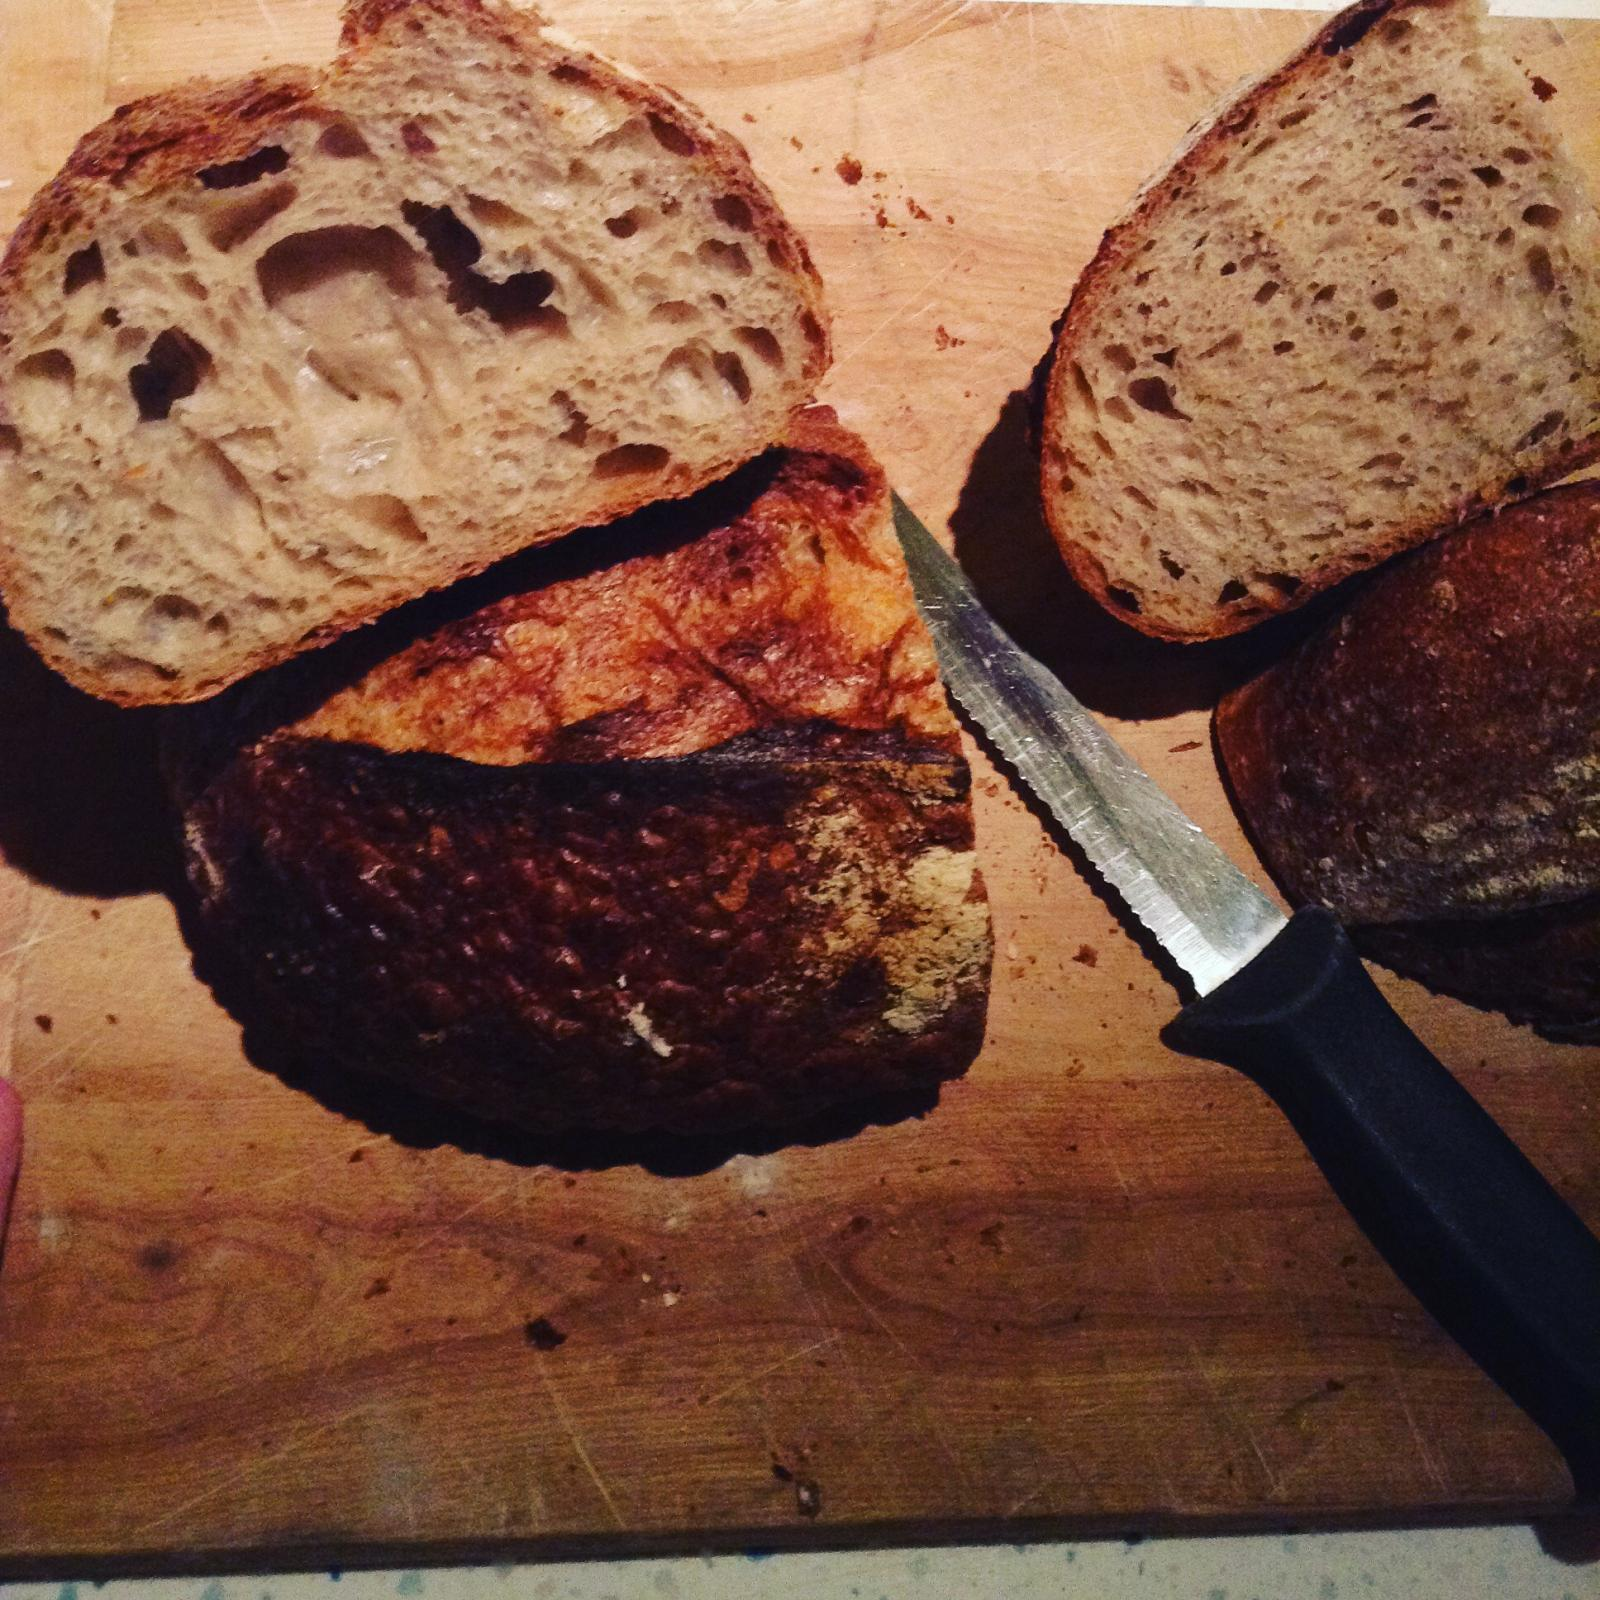 Country Levain and Oat Levain